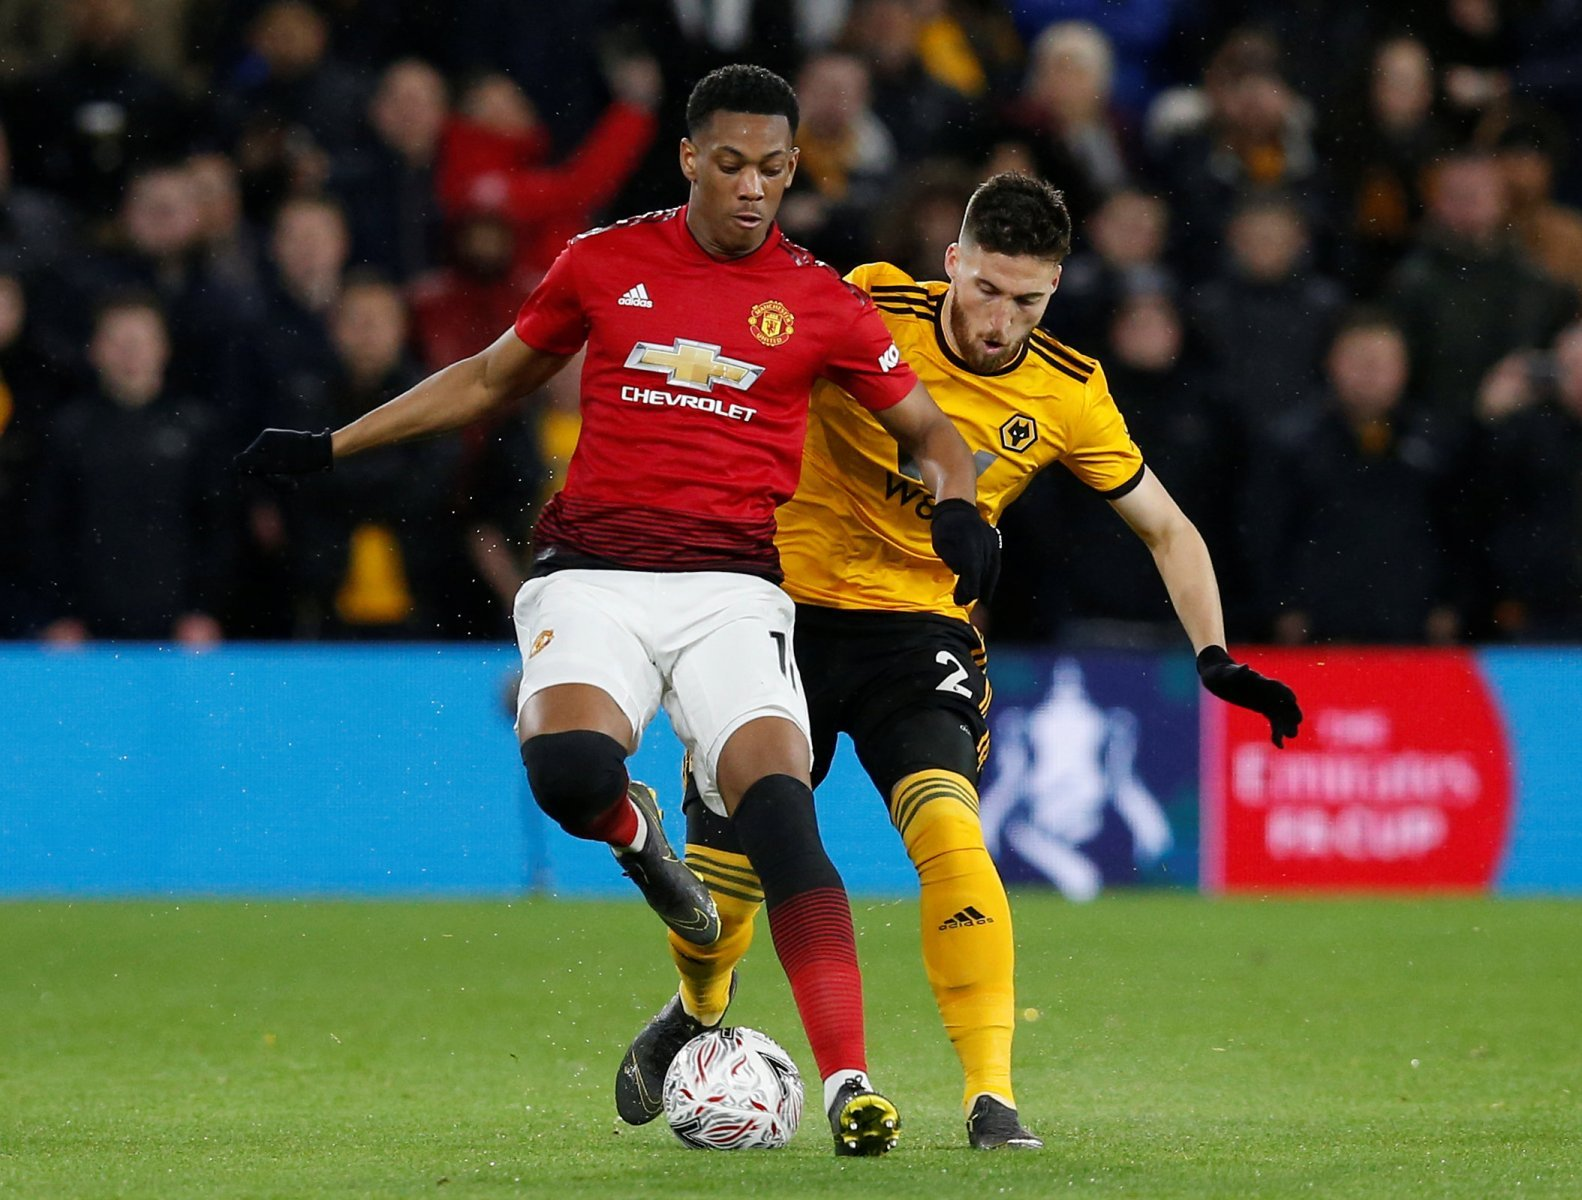 Manchester United: Anthony Martial expected to miss Saints clash